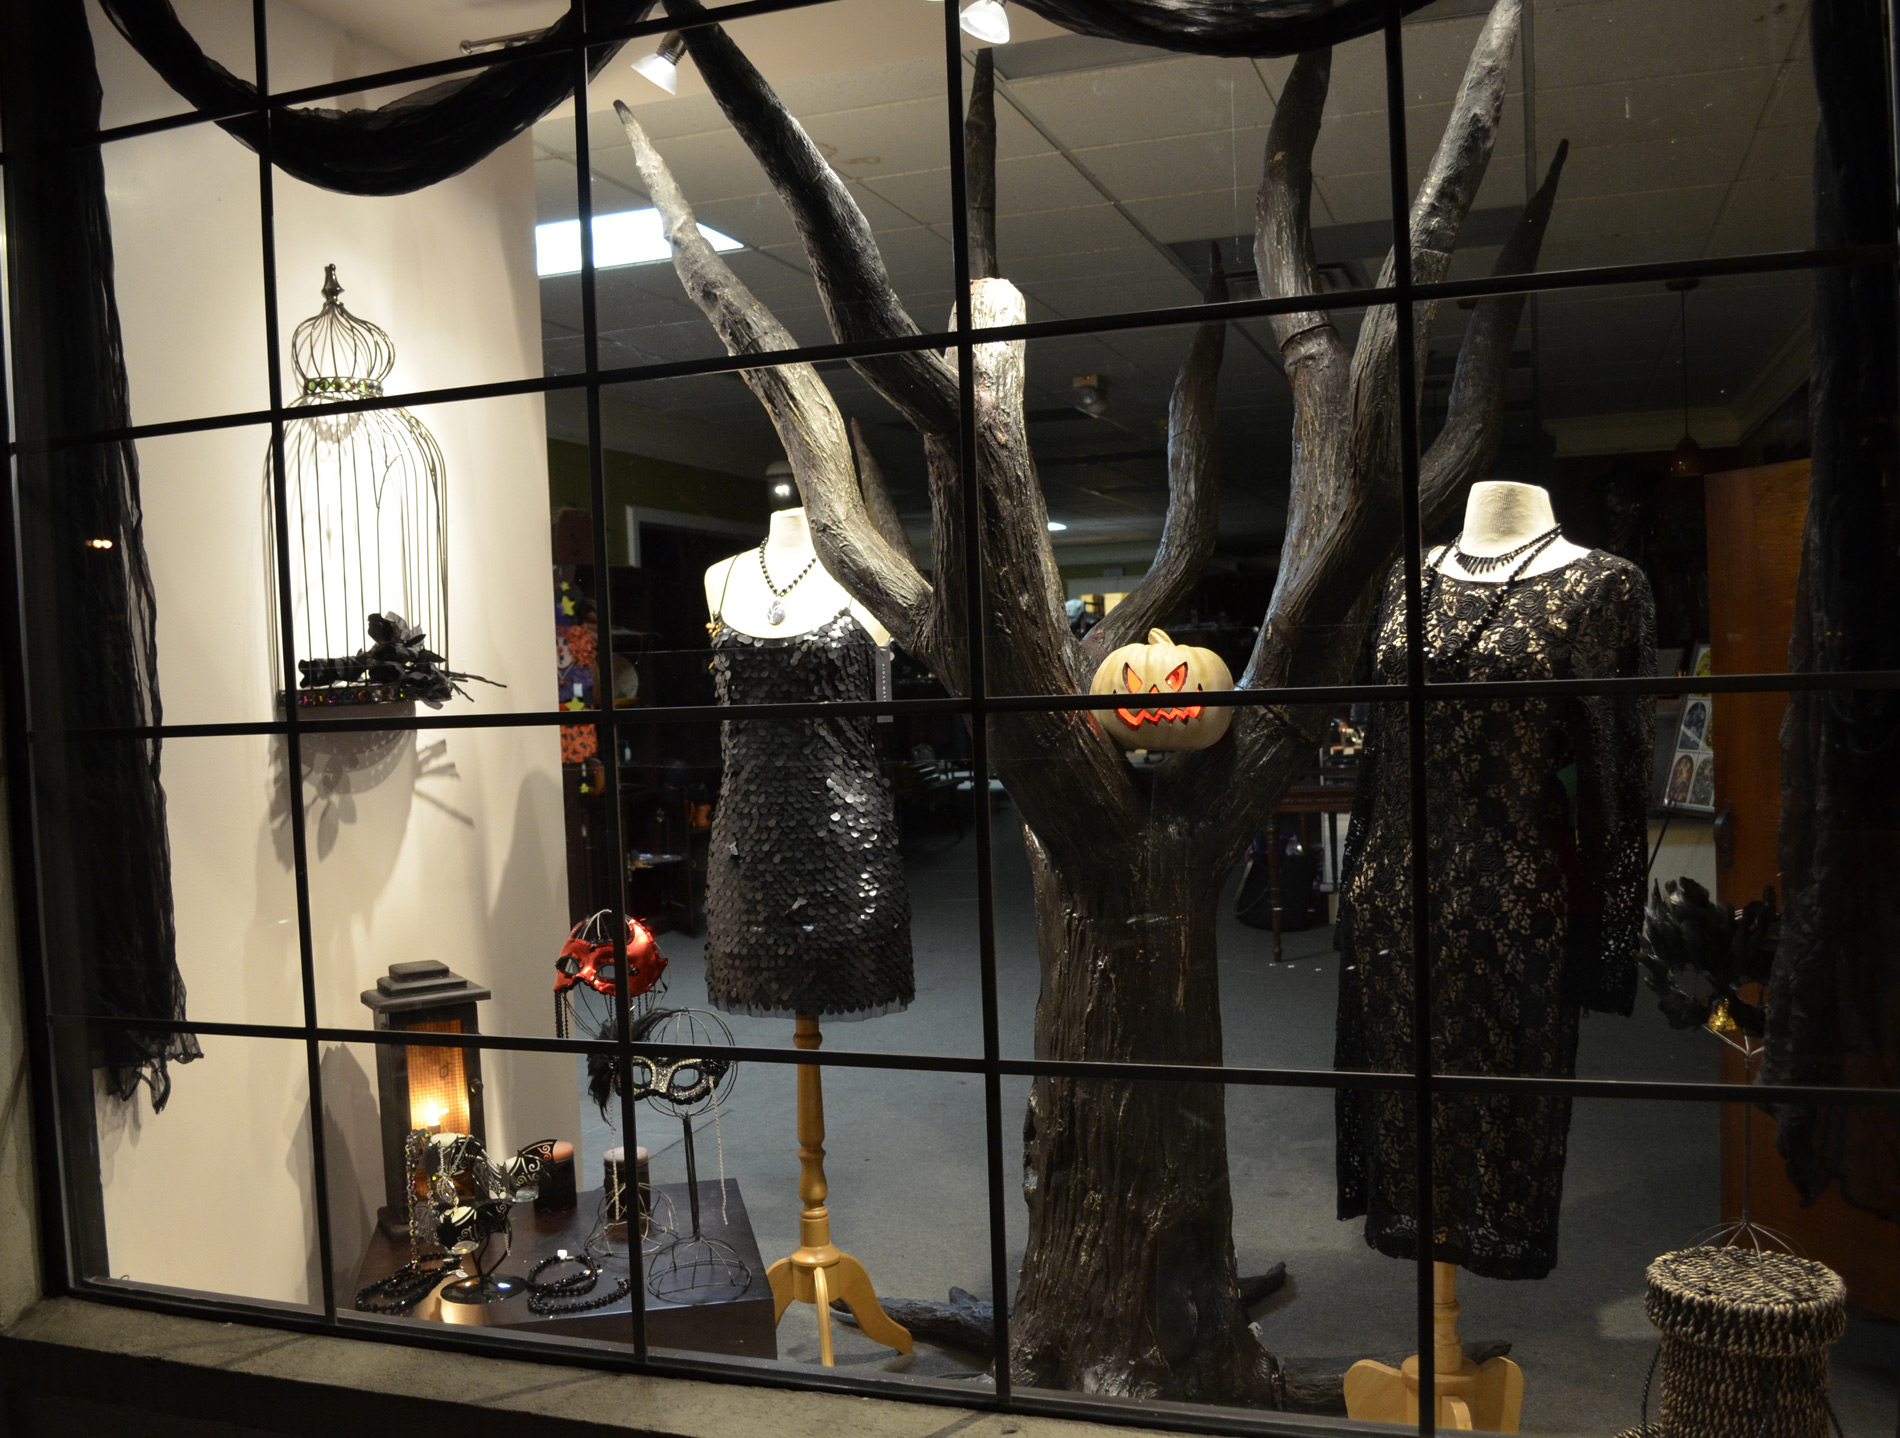 In the Oakmont Halloween window display, the scariest atmosphere is given by the big tree placed between the black clothes surrounded by a black curtain.